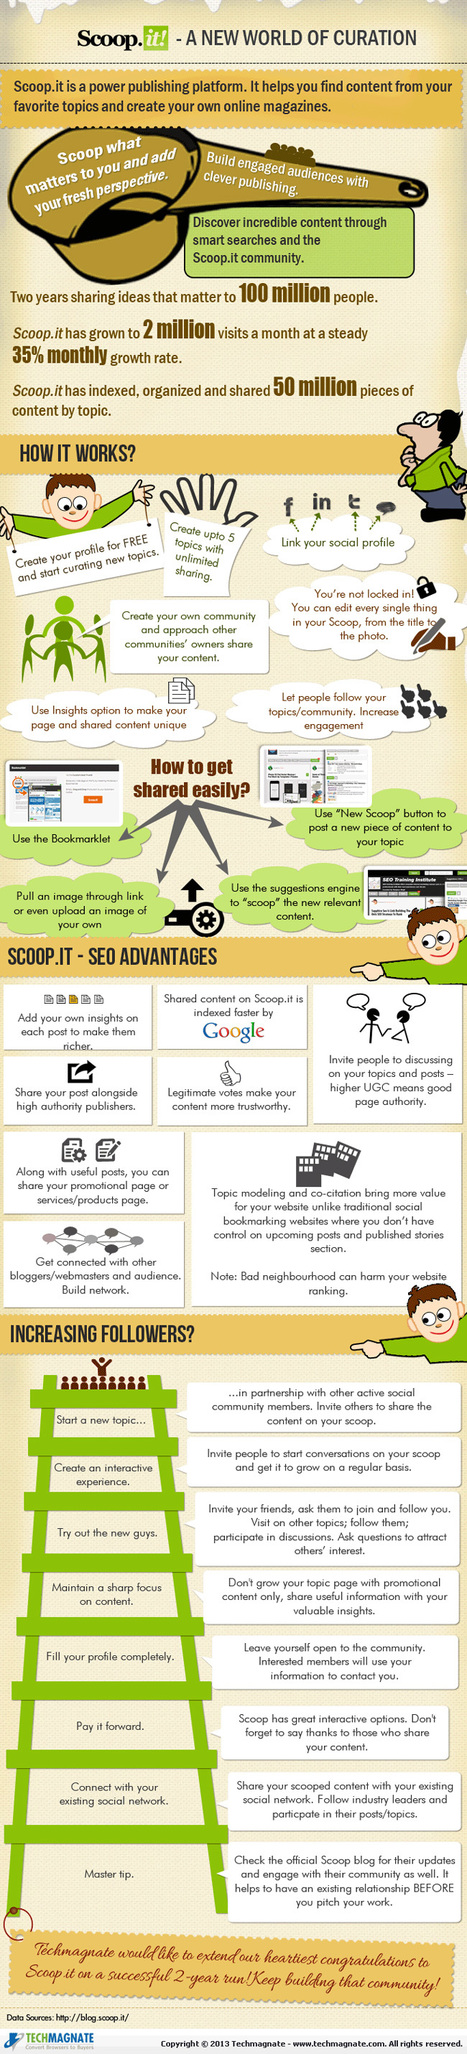 Scoop.It for SEO – A New World of Curation [Infographic] | Marketing | Social Media | Scoop.it